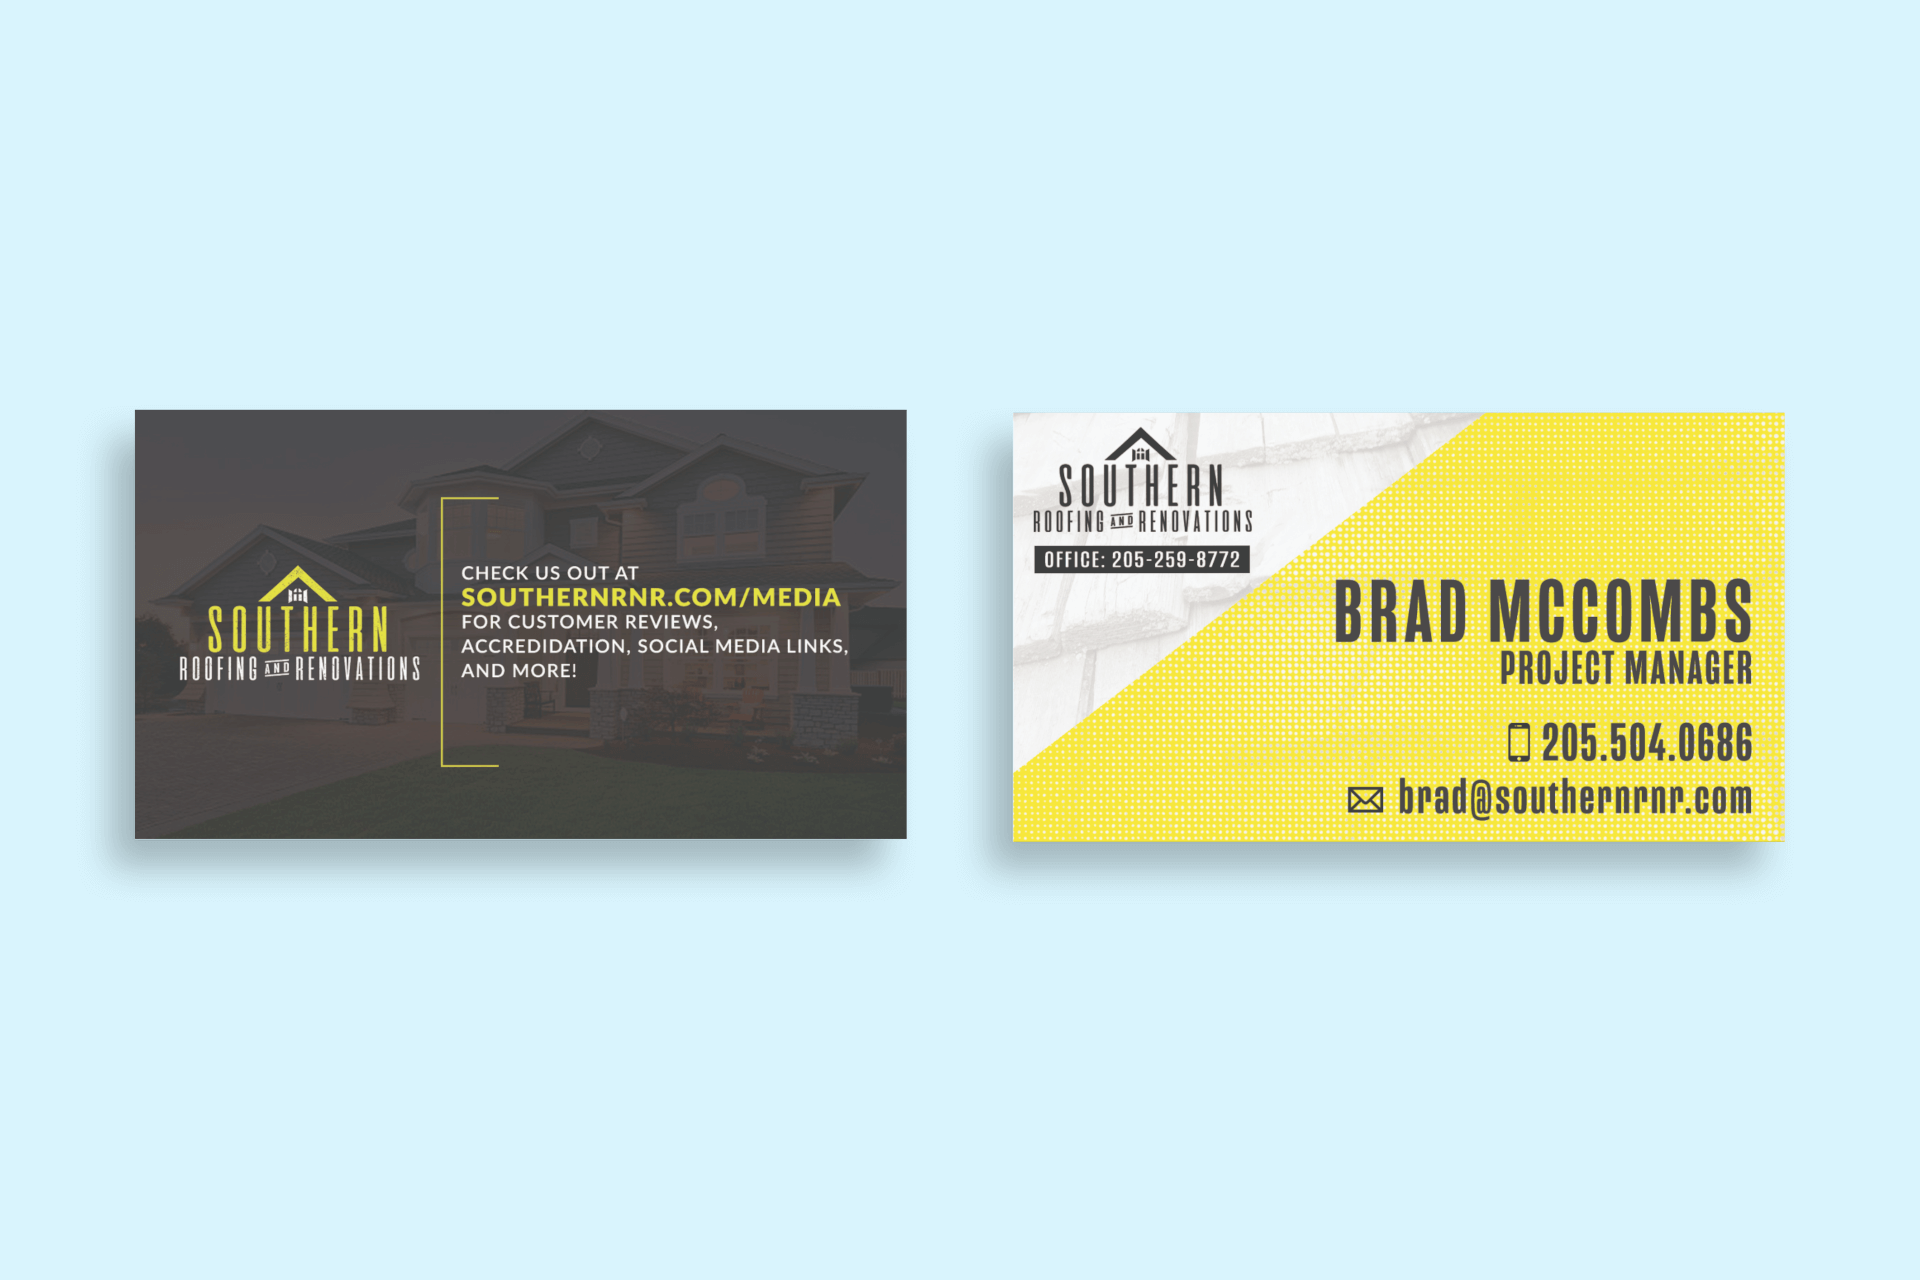 our work Our Work minimal mockup featuring two business cards lying on a colored surface 775 el